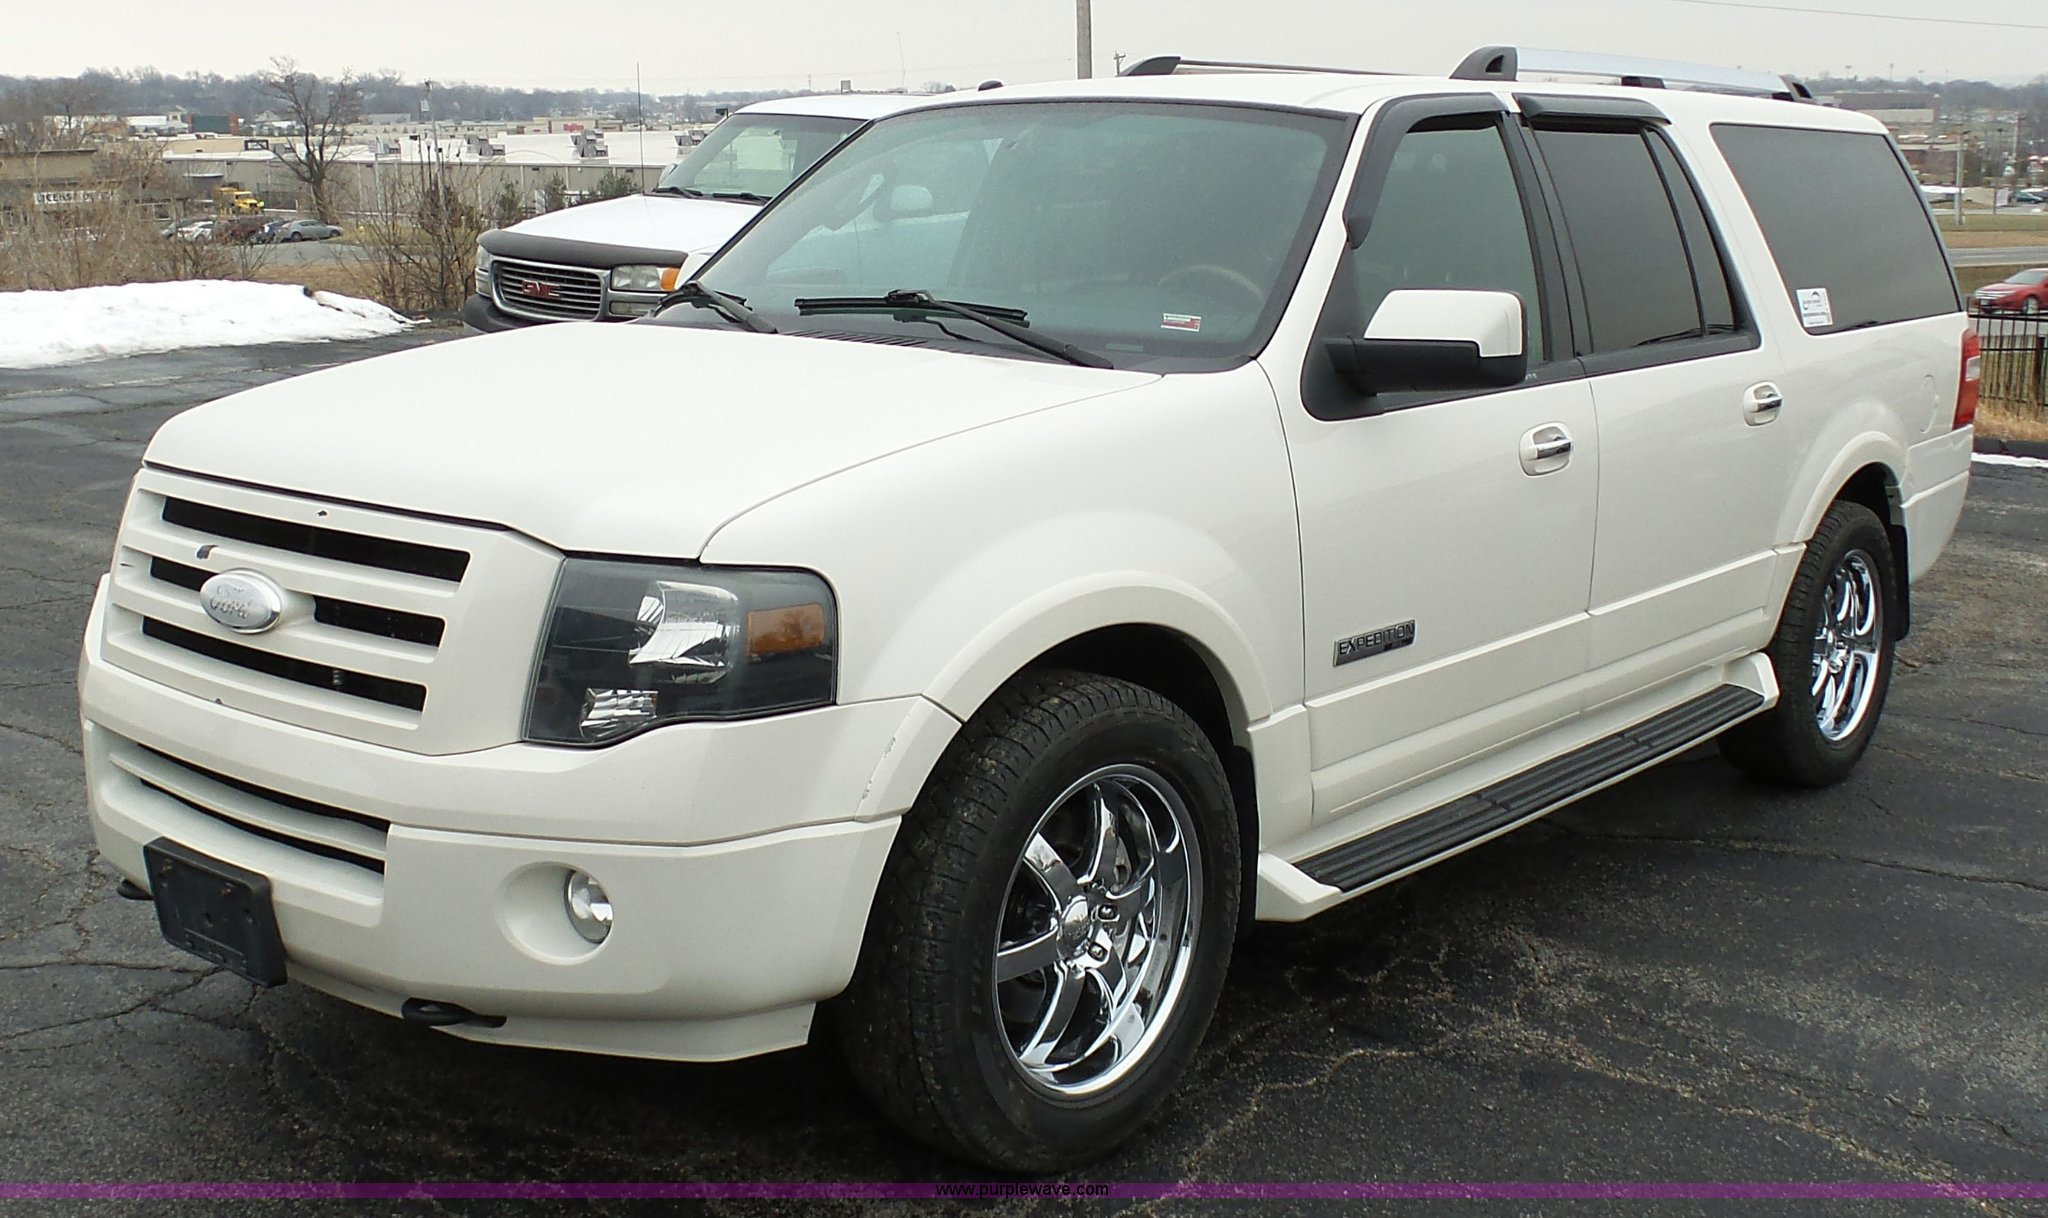 K5480 image for item k5480 2008 ford expedition